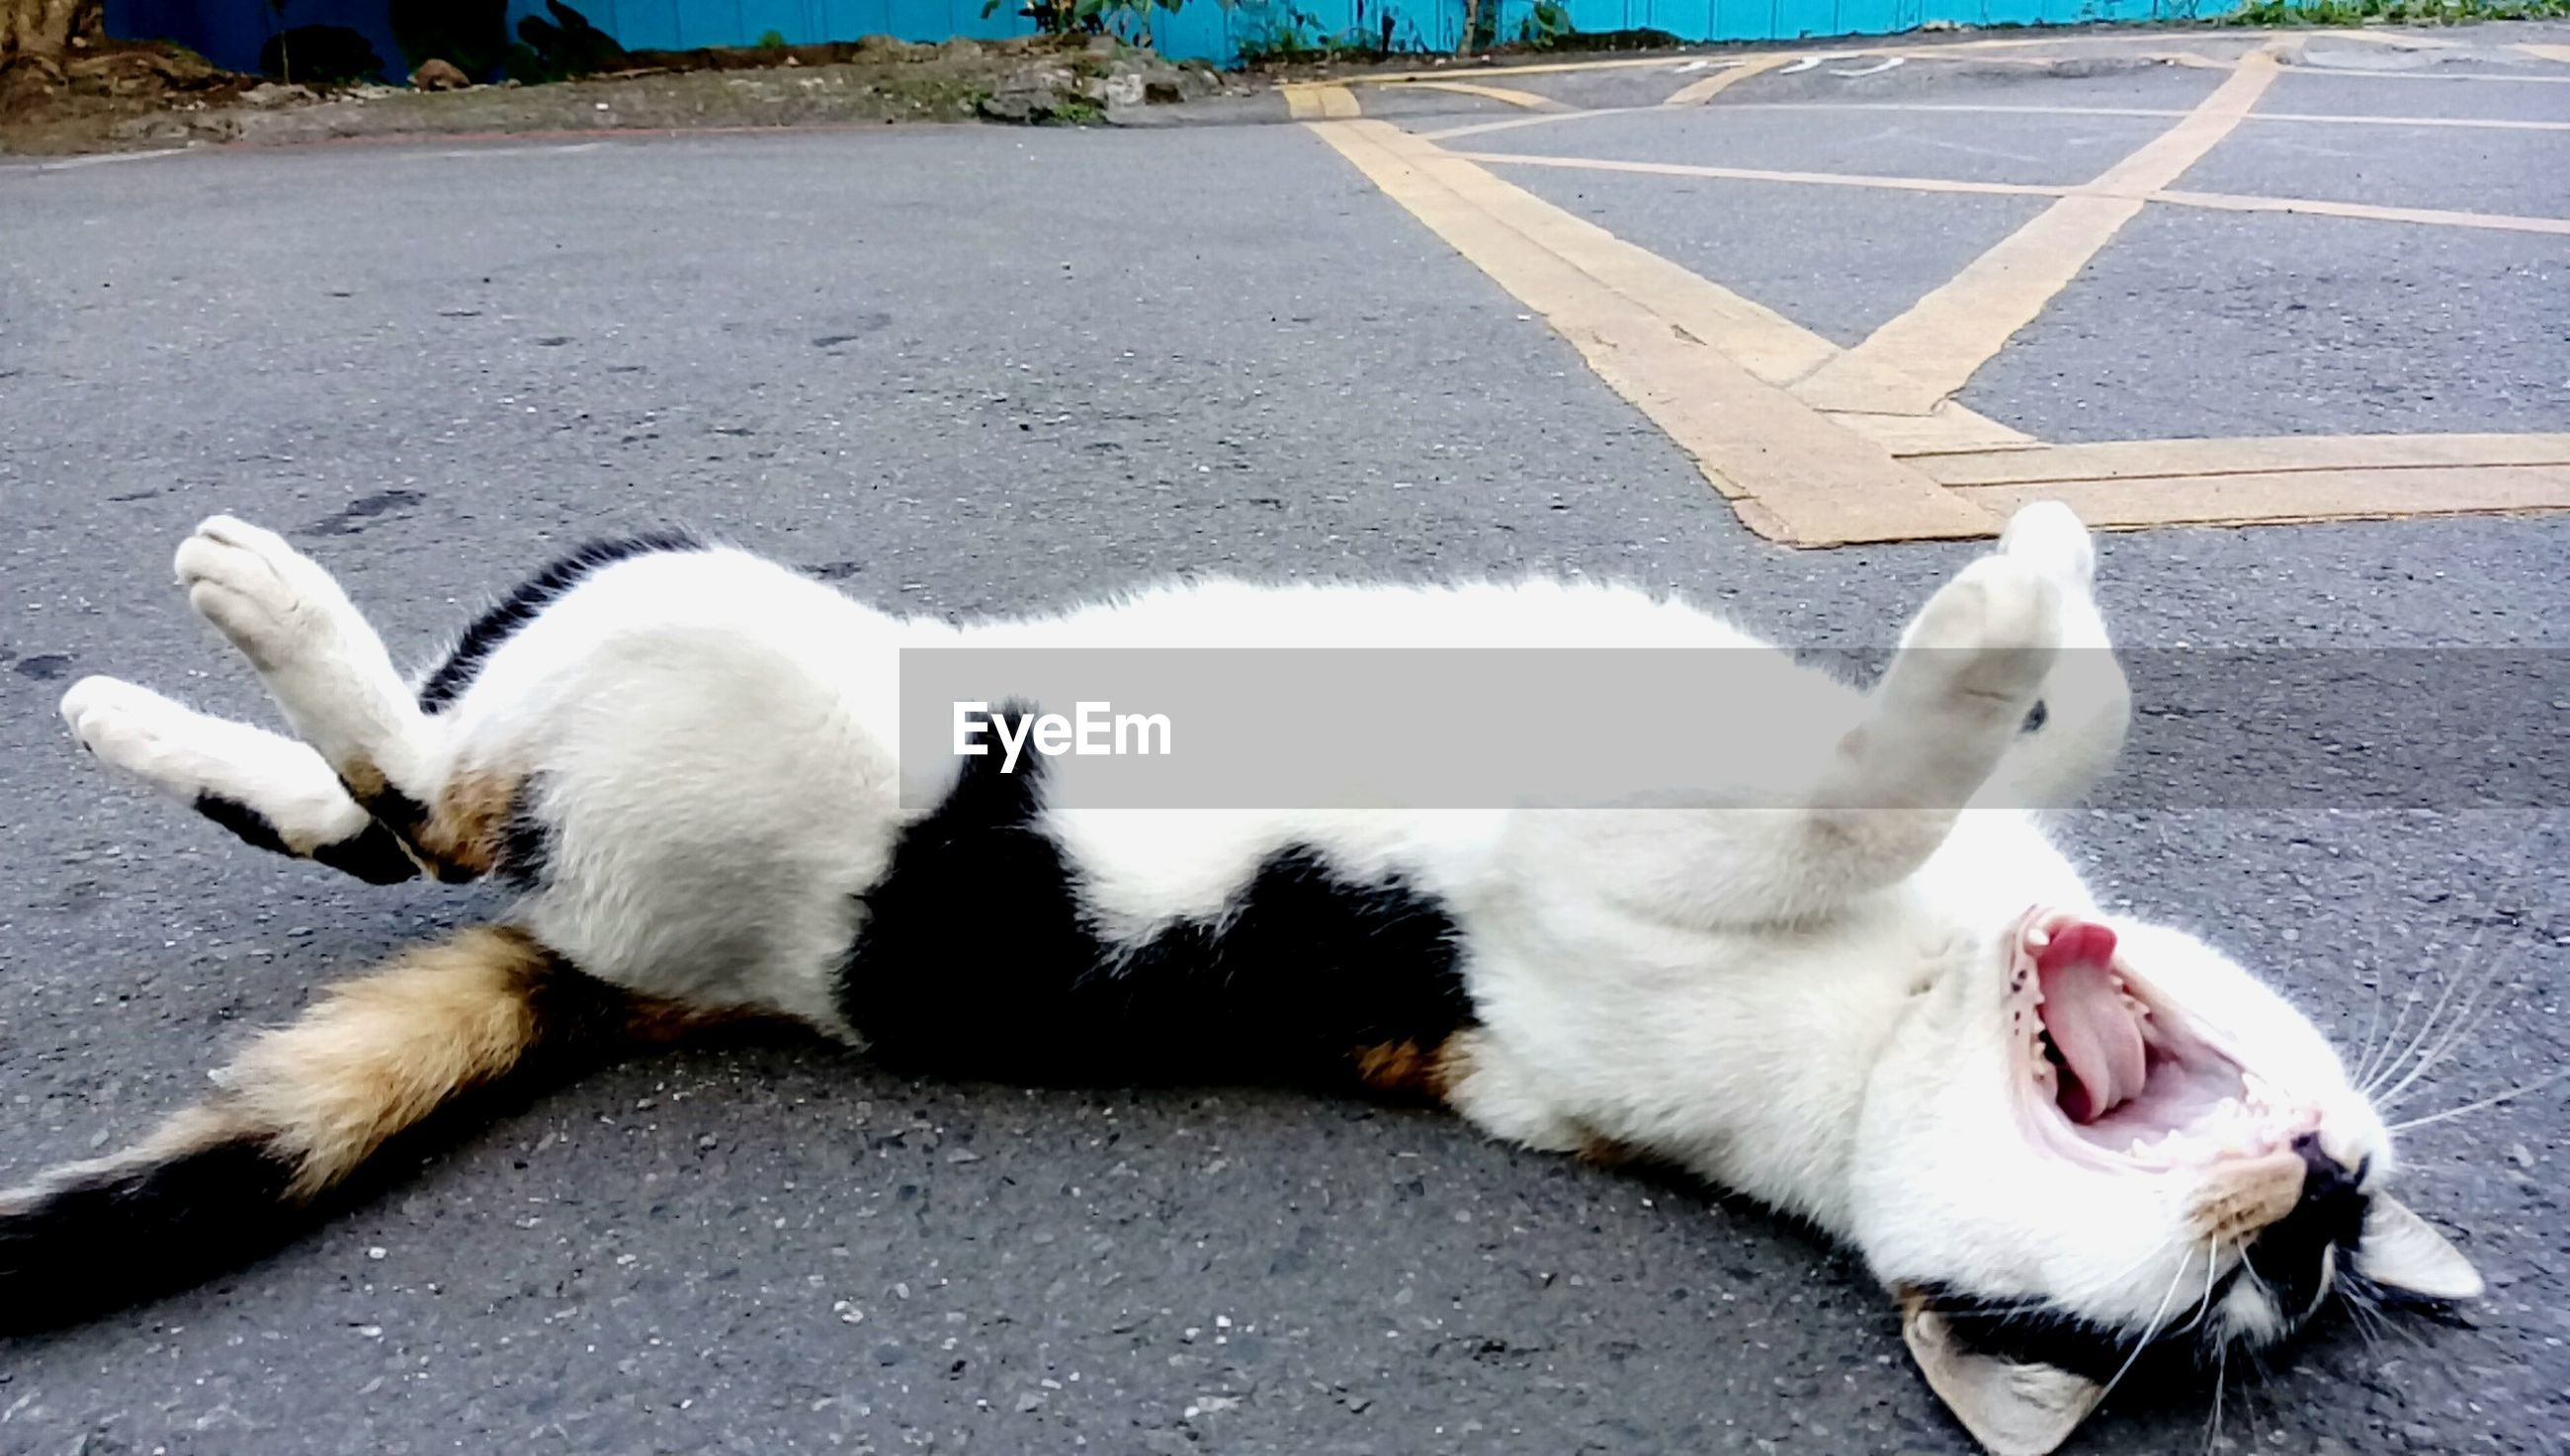 High angle view of cat relaxing on road